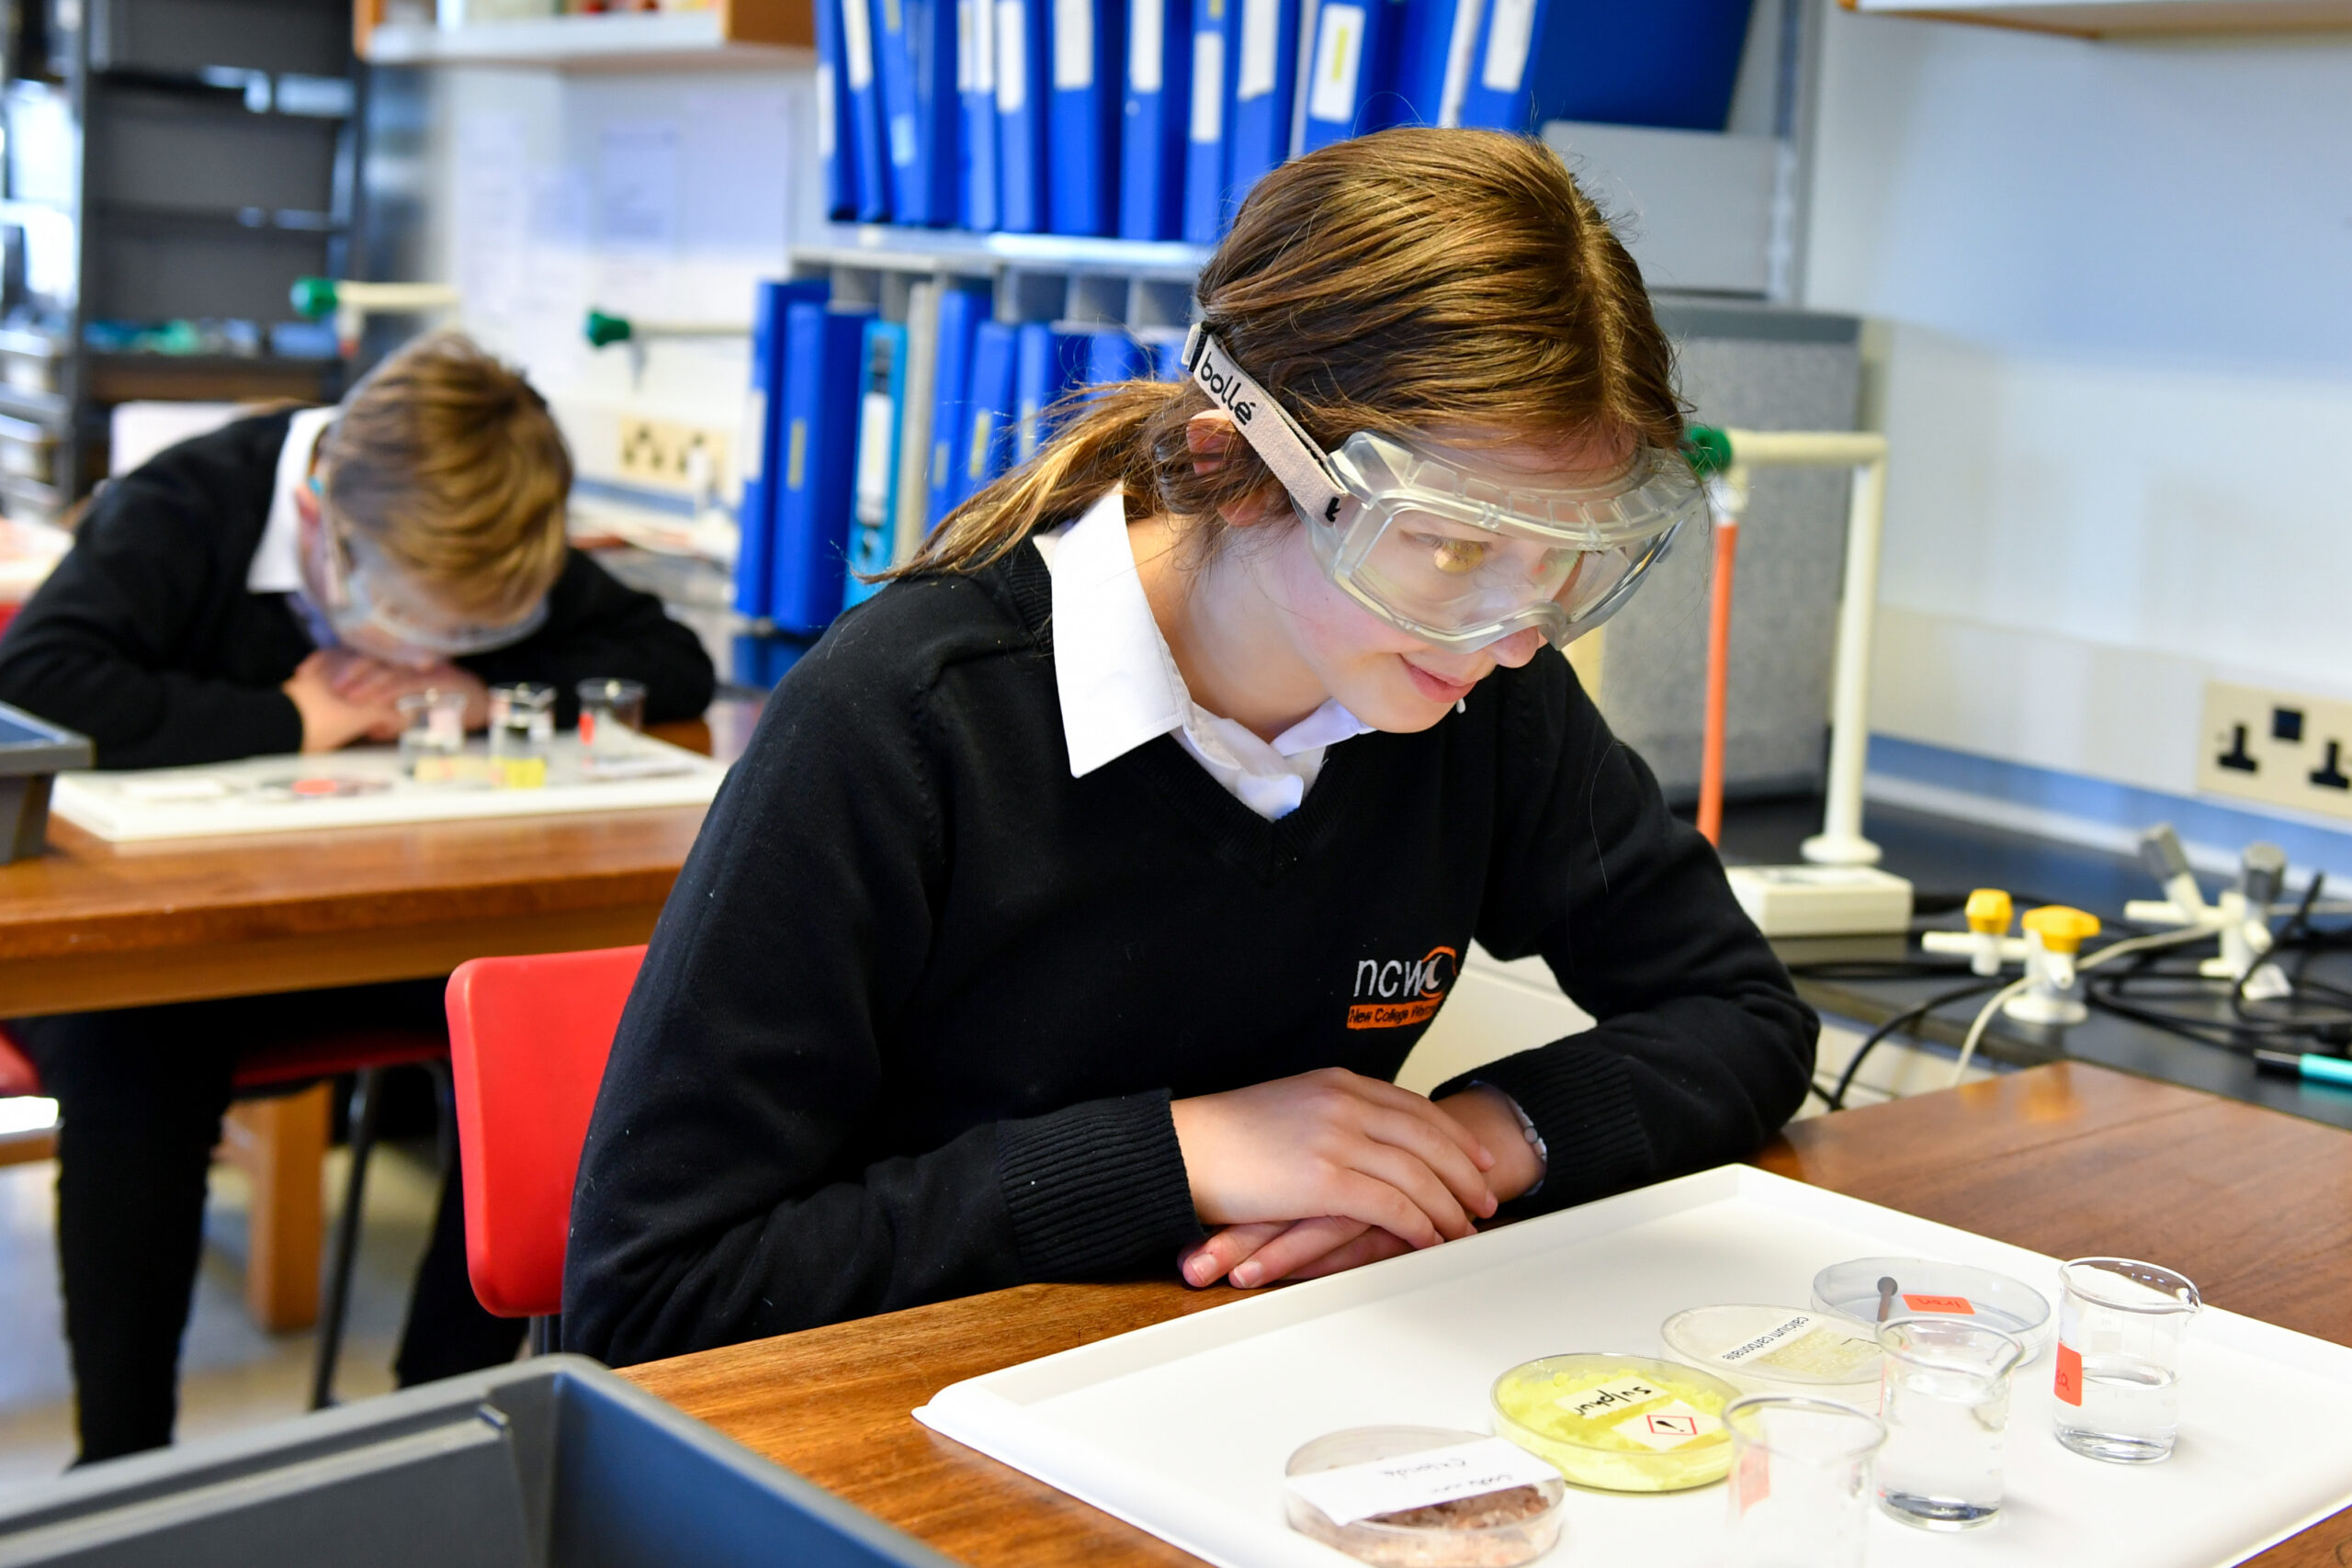 Student in Science lesson wearing protective eyewear and looking at different materials